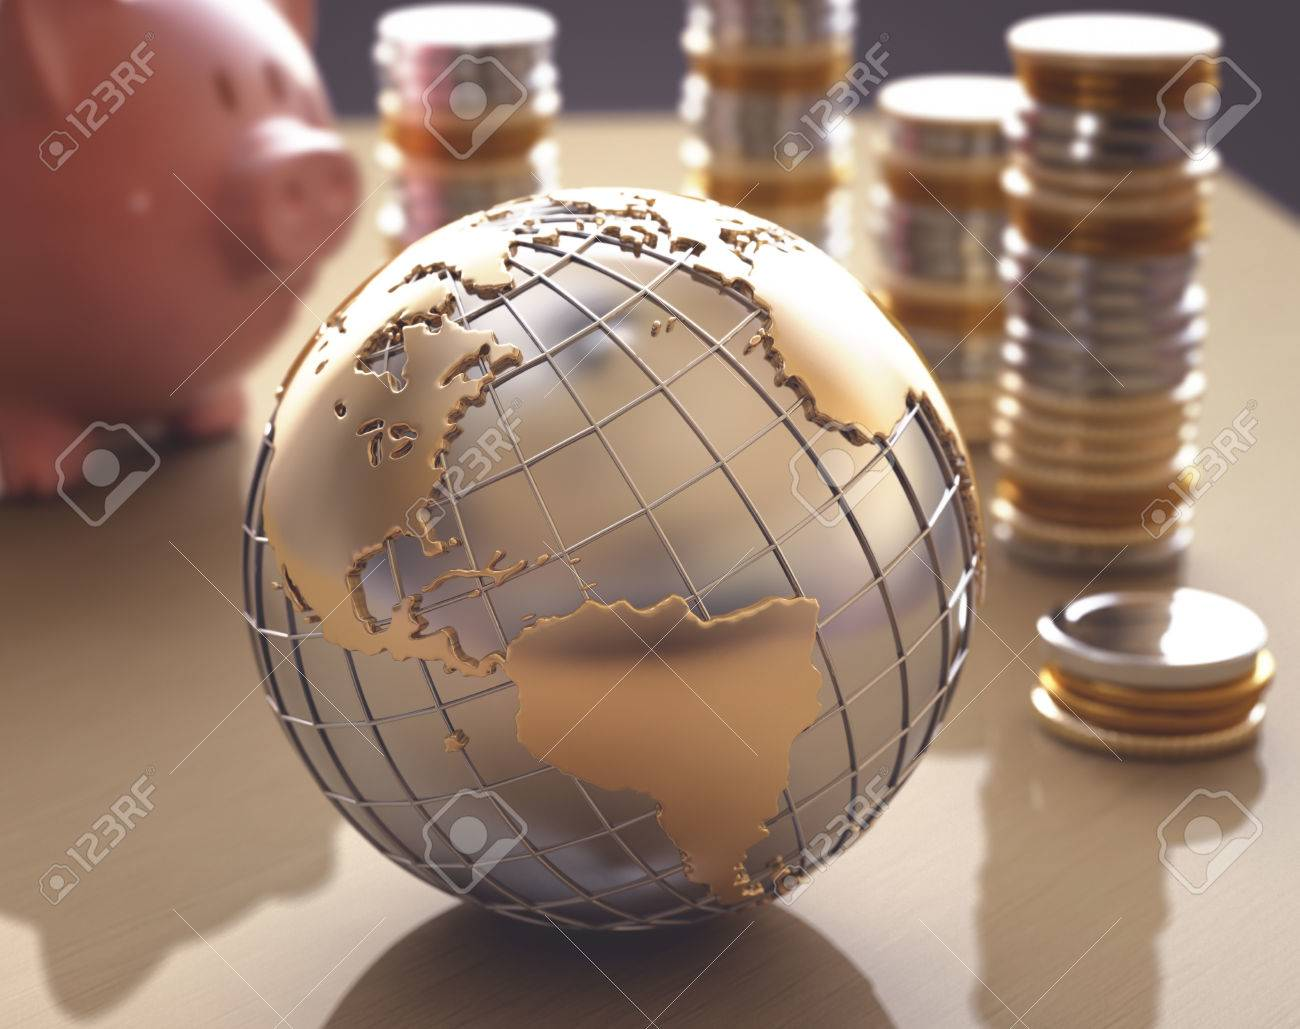 Planet Earth made of gold and silver on a concept of the business world. - 29284619